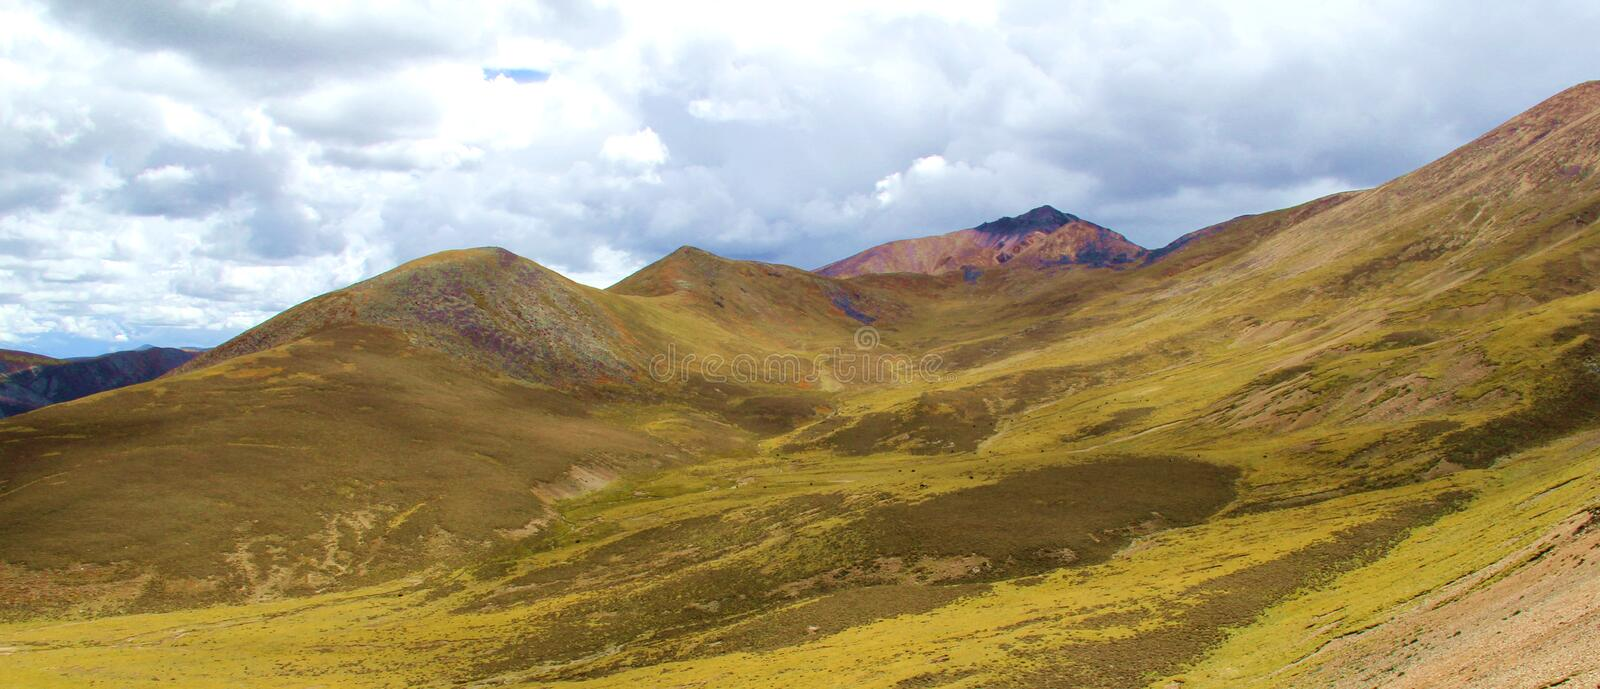 Mila mountain range Tibet. The place full of mountains, kinds of styles and heights,different colors and shapes stock photos